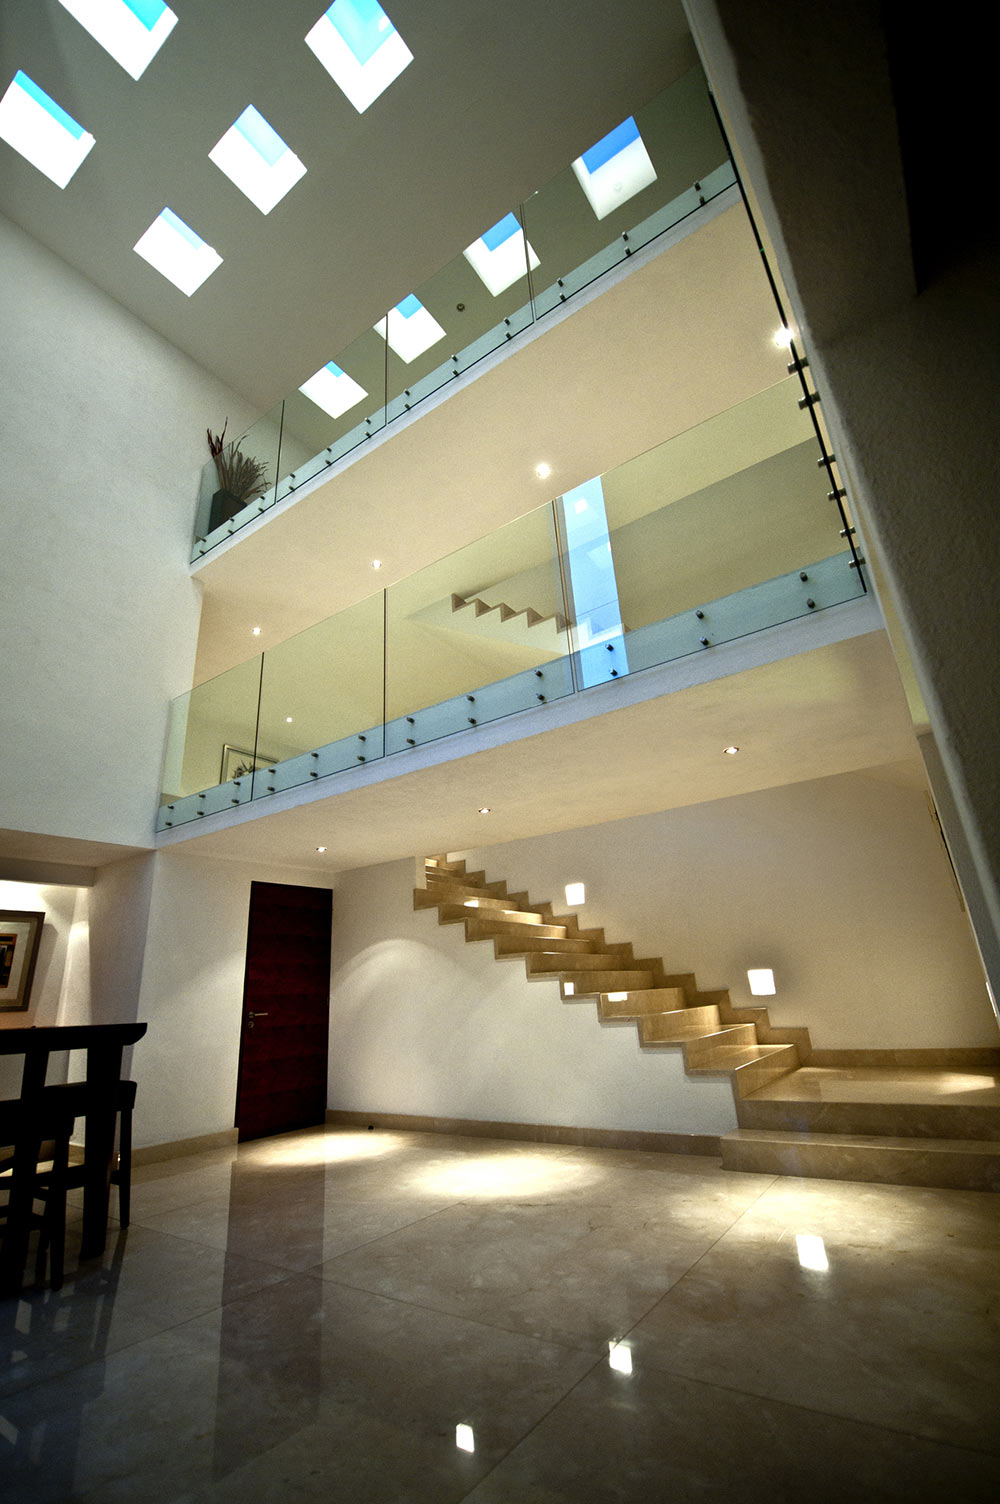 Marble Flooring, Hall, Sophisticated Three Story Home in Mexico